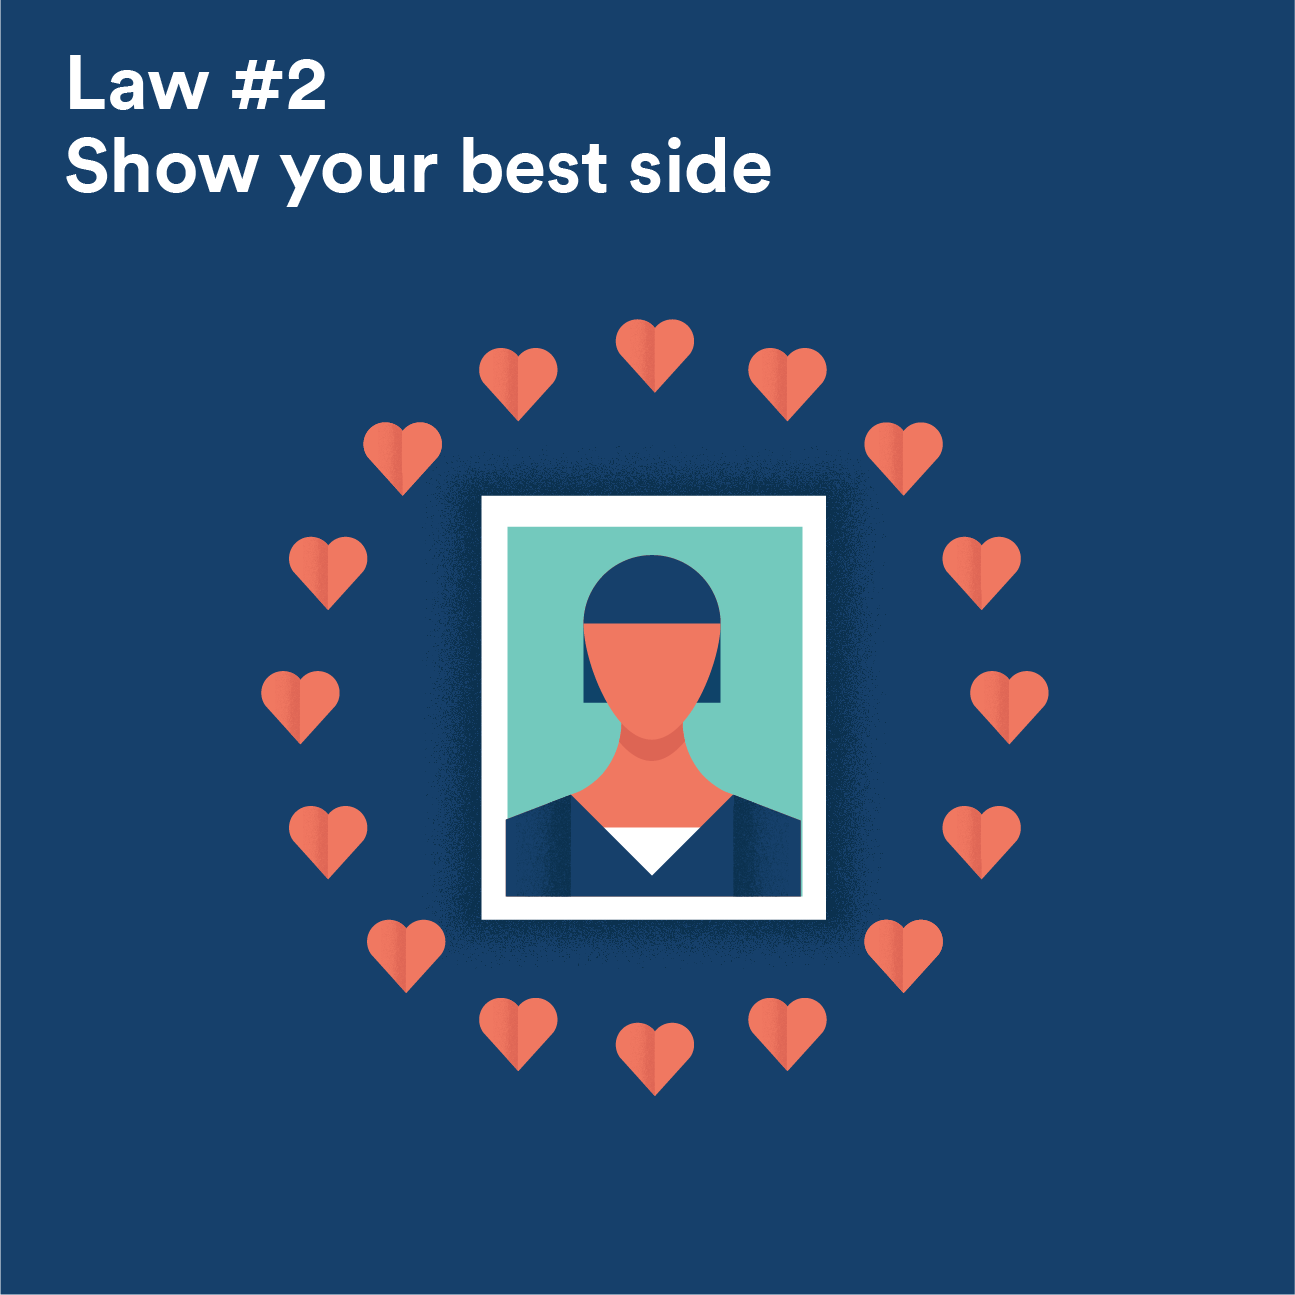 Law #2 - Show your best side